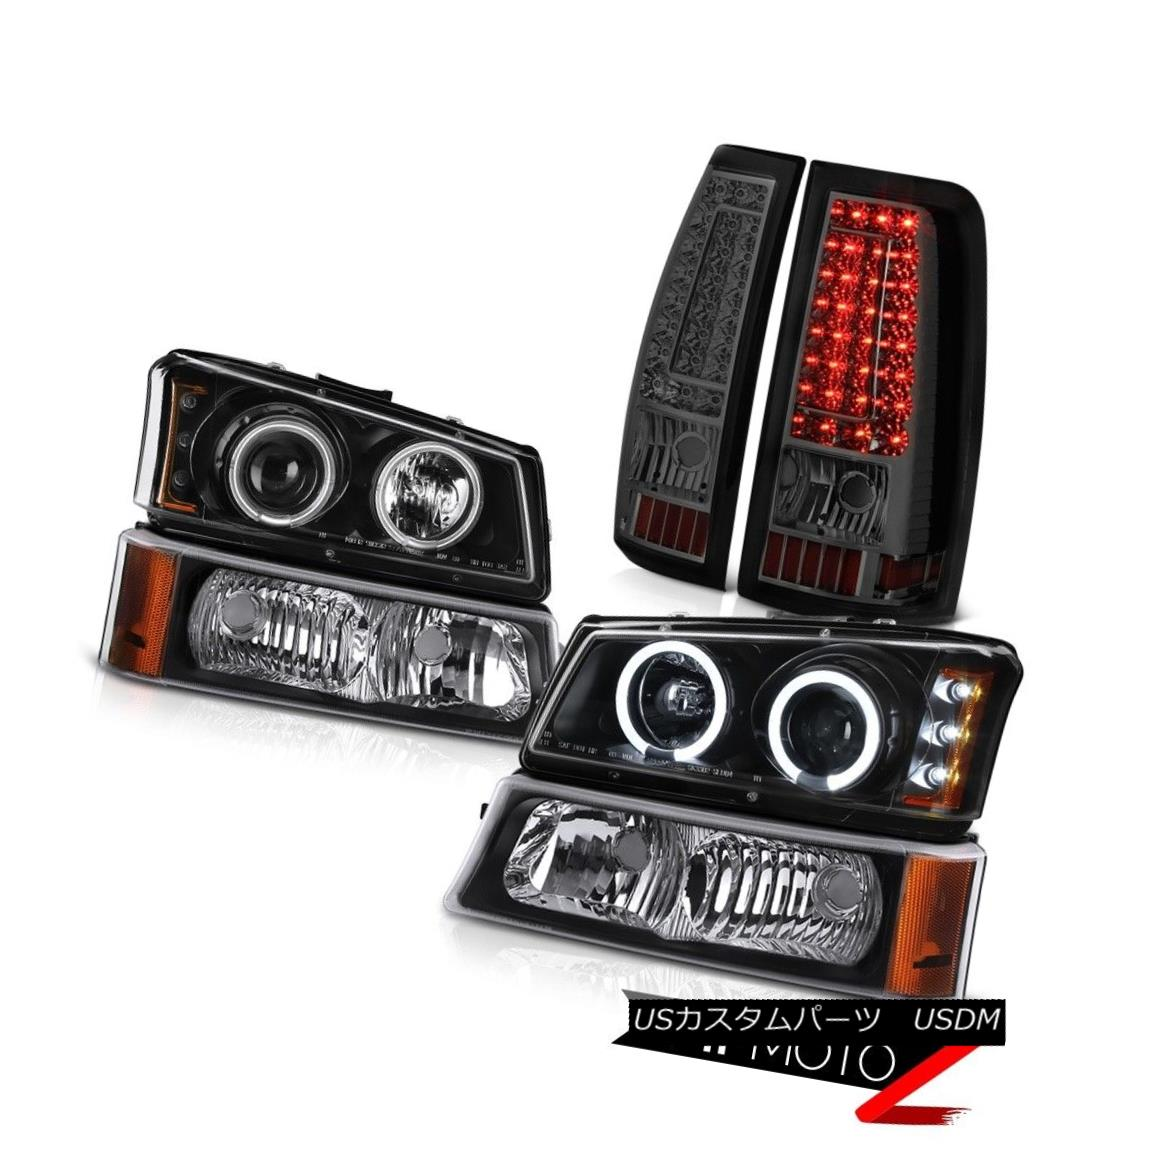 テールライト 03 04 05 06 Chevy Silverado 1500 Tail Lamps Raven Black Signal Light Headlamps 03 04 05 06 Chevy Silverado 1500テールランプRaven Blackシグナルライトヘッドランプ